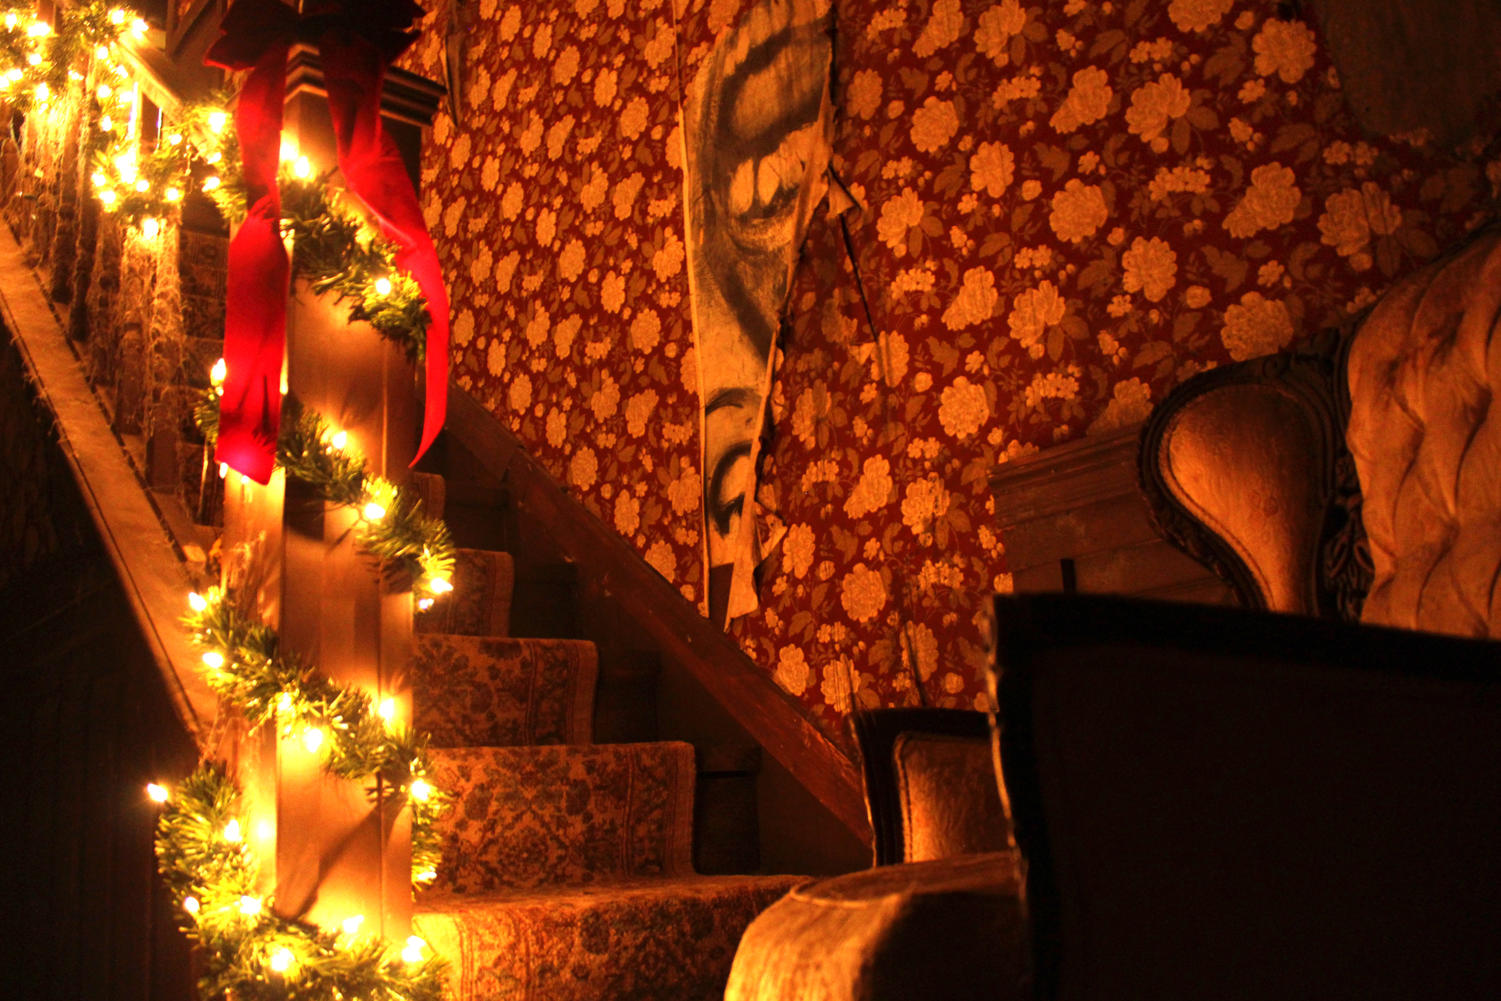 Stairs+decorated+in+garlands+and+lights+lead+to+even+more+haunts.+Traditional+holiday+decor+mixed+with+scares+around+every+corner+make+the+haunted+house+ho-ho-horrifying.+Photo+credit%3A+Caitlyn+Reisgen